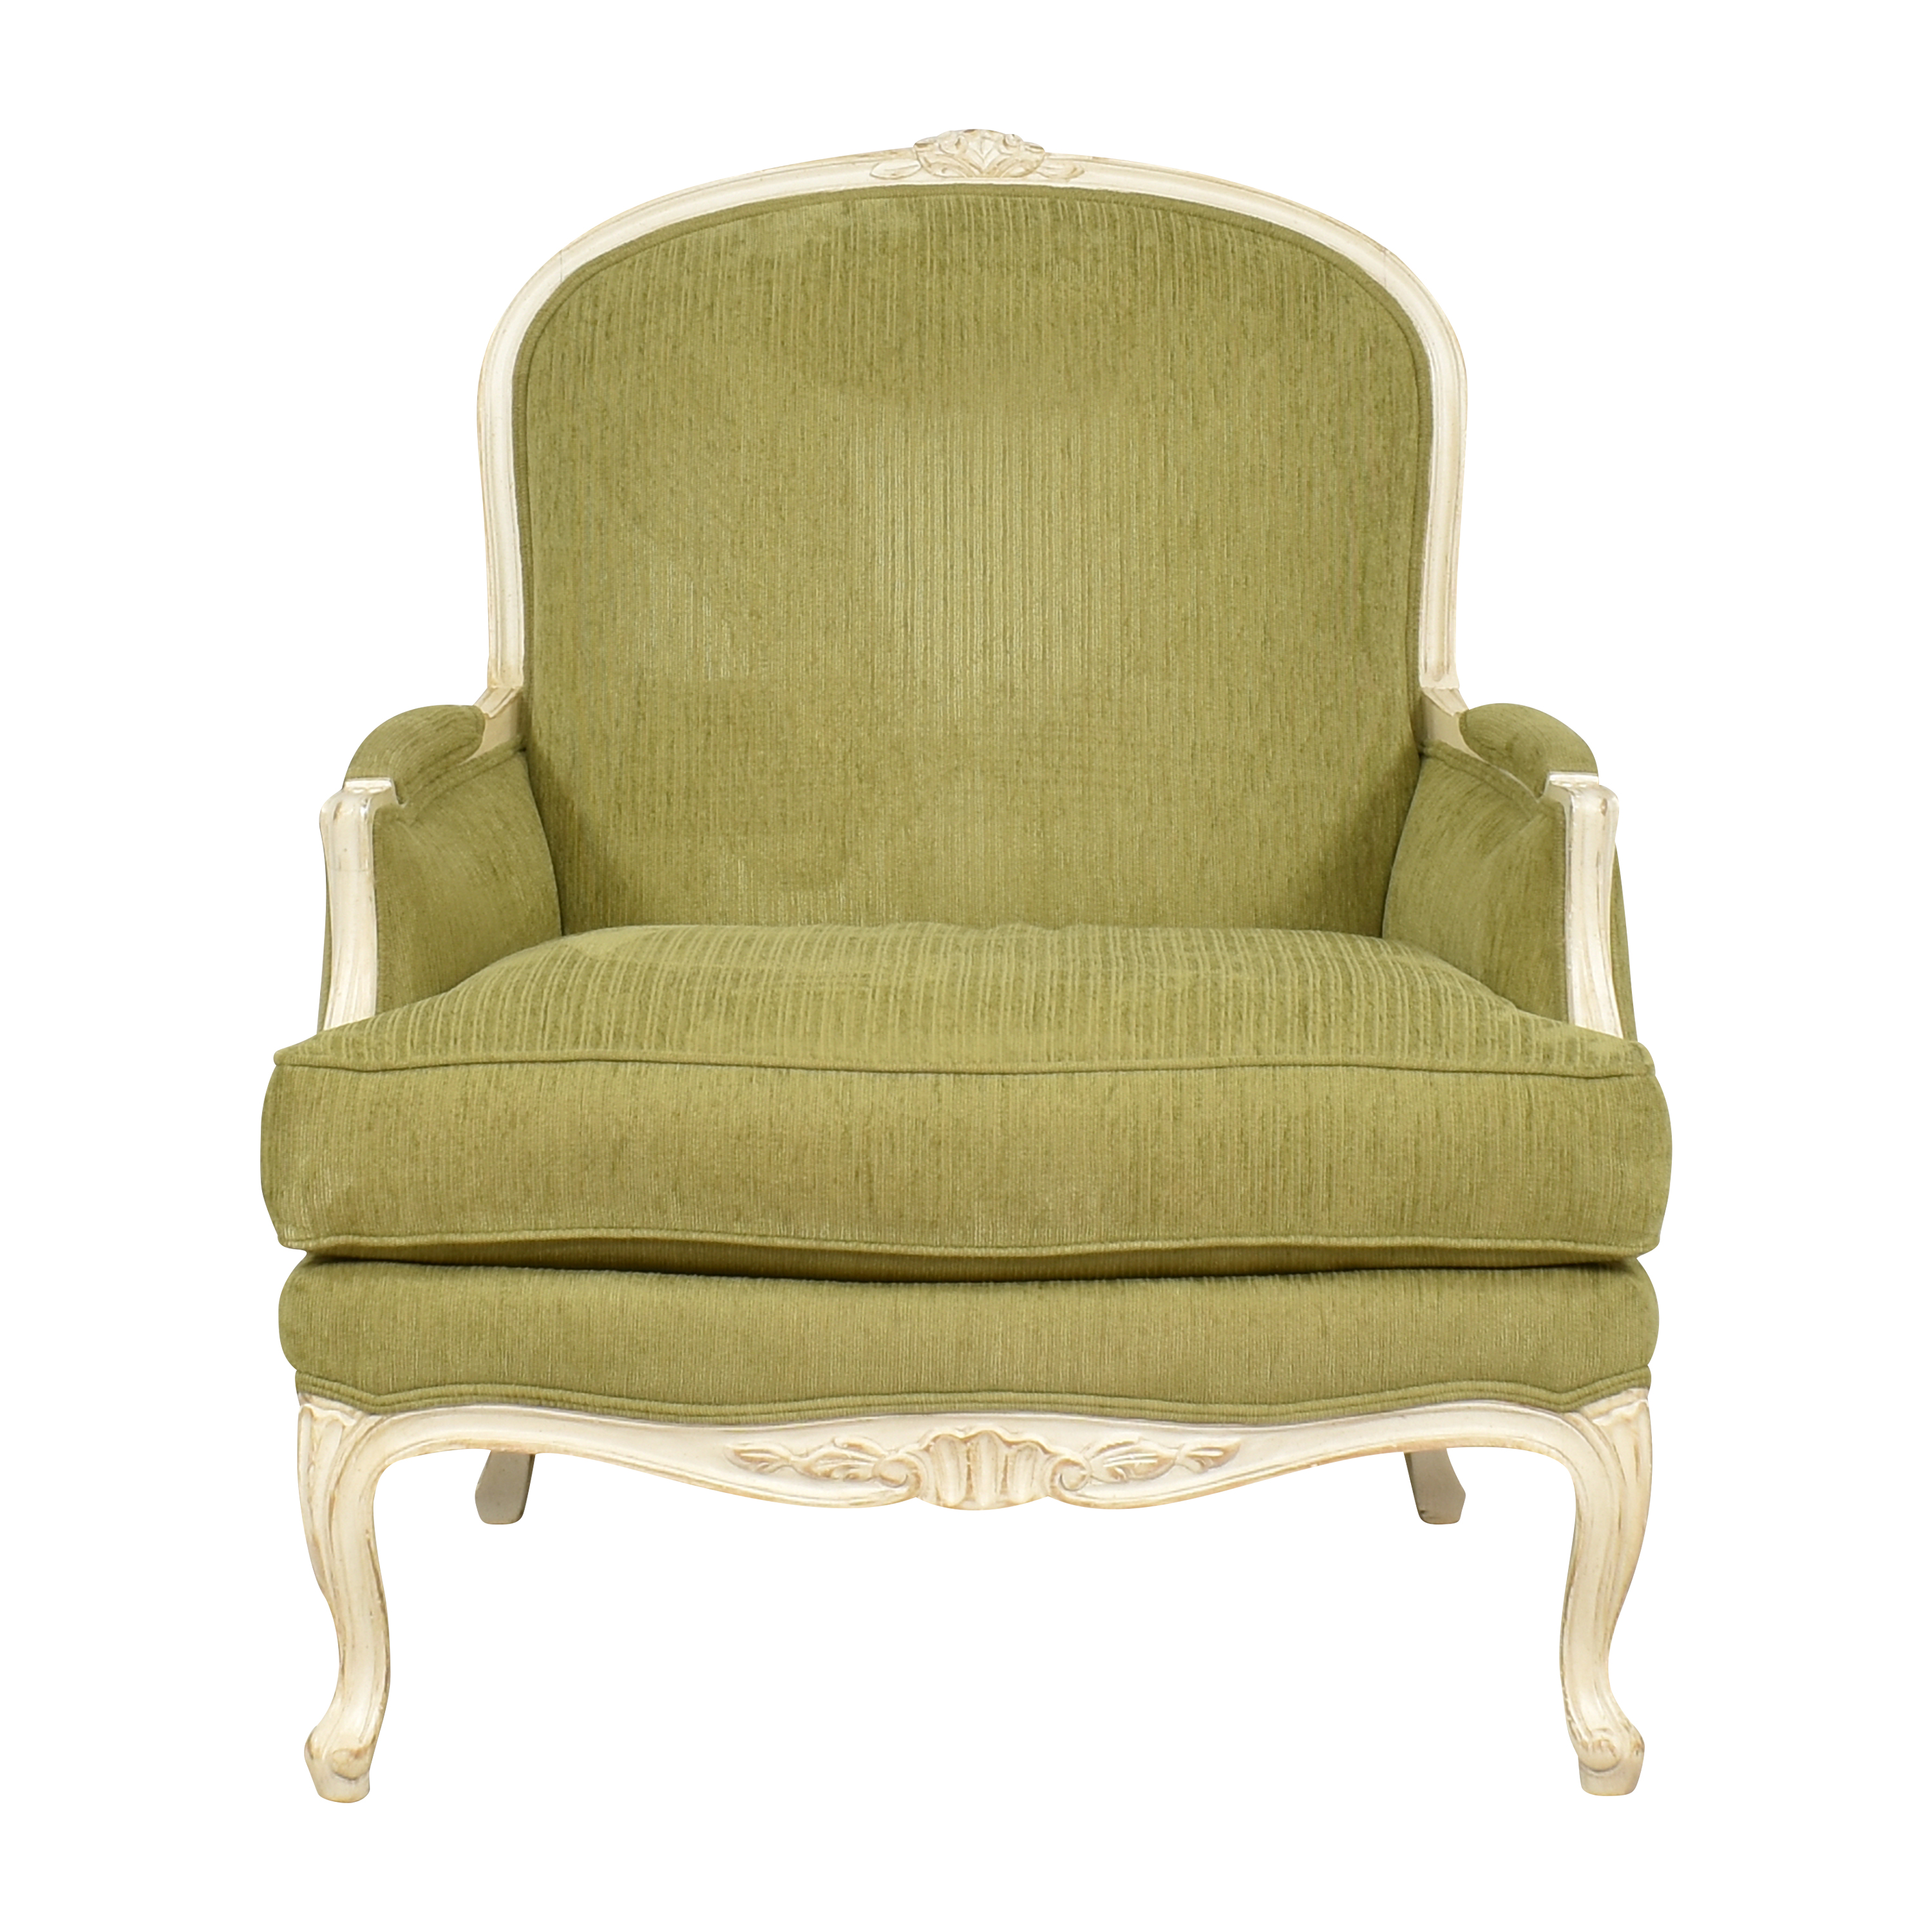 Ethan Allen Ethan Allen Upholstered Accent Chair used